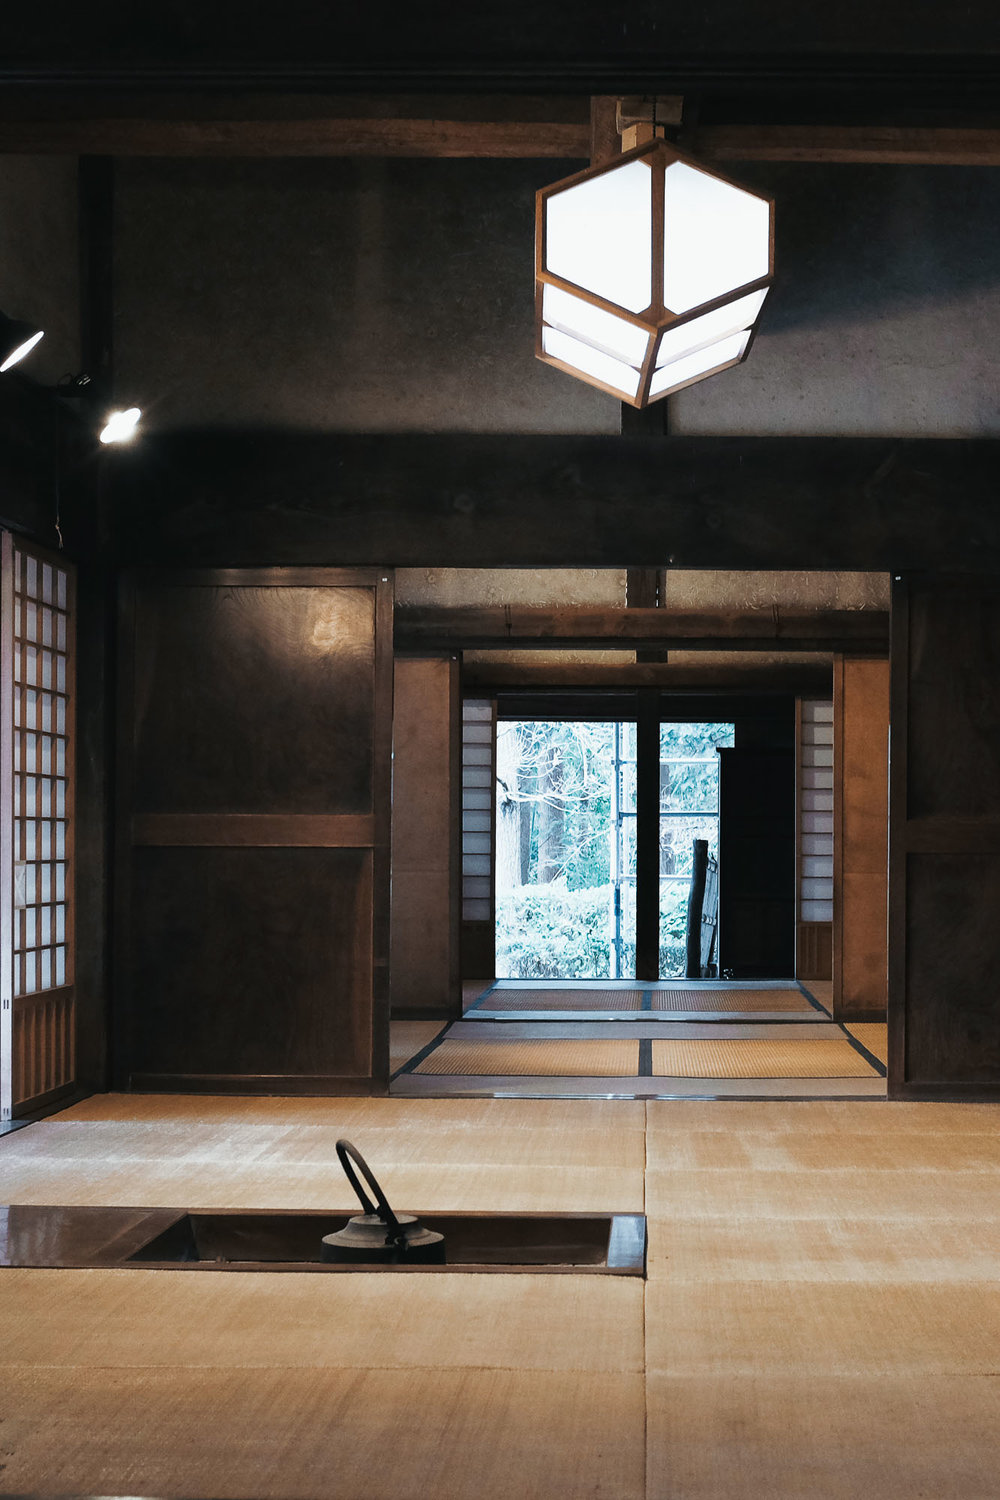 The irori (fire-pit) in Hamada's personal residence.